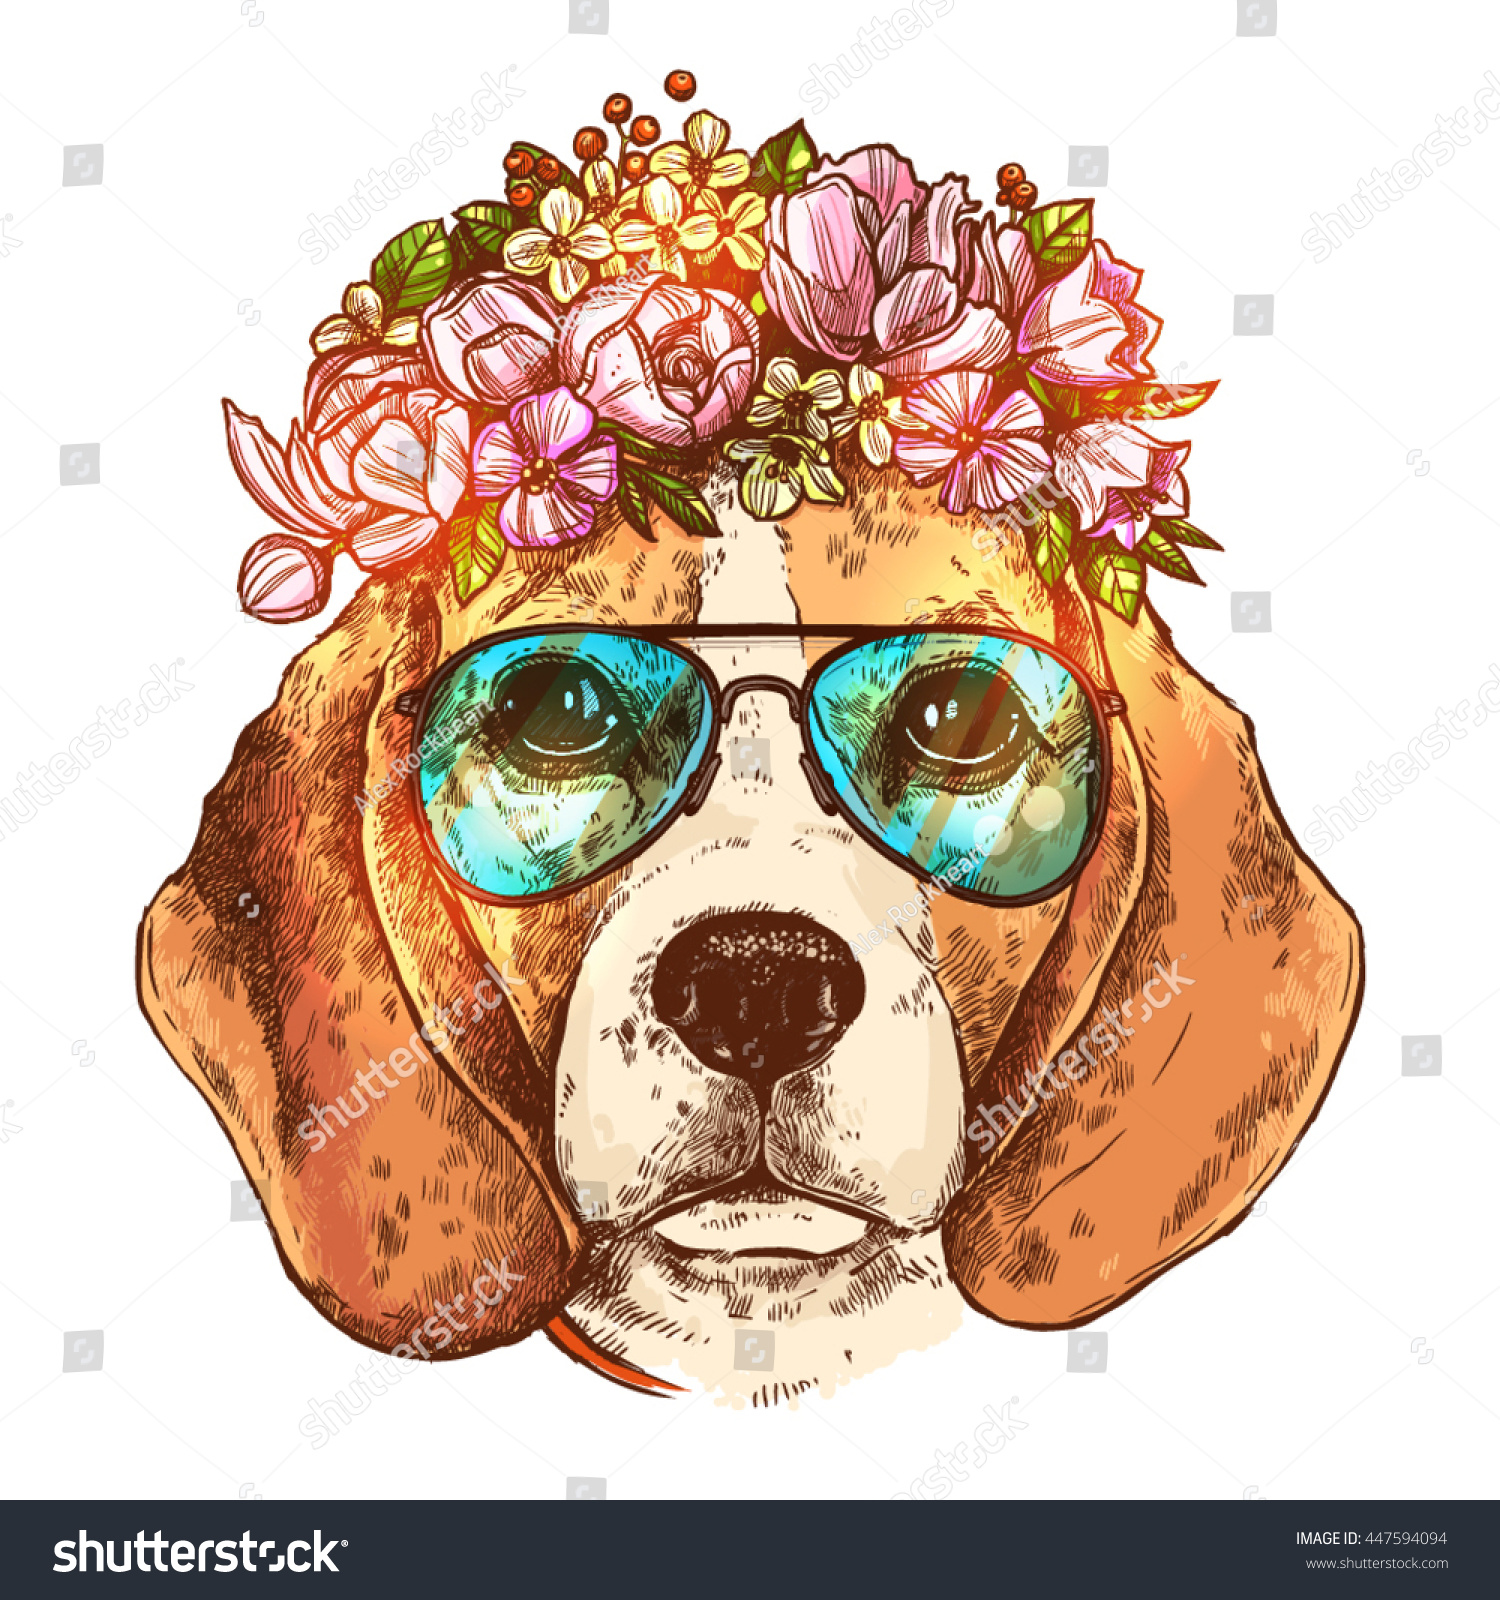 Portrait Of Beagle Dog With Flower Floral Wreath And Sunglasses Sketch Color Hand Drawn Vintage Style Hipster Animal